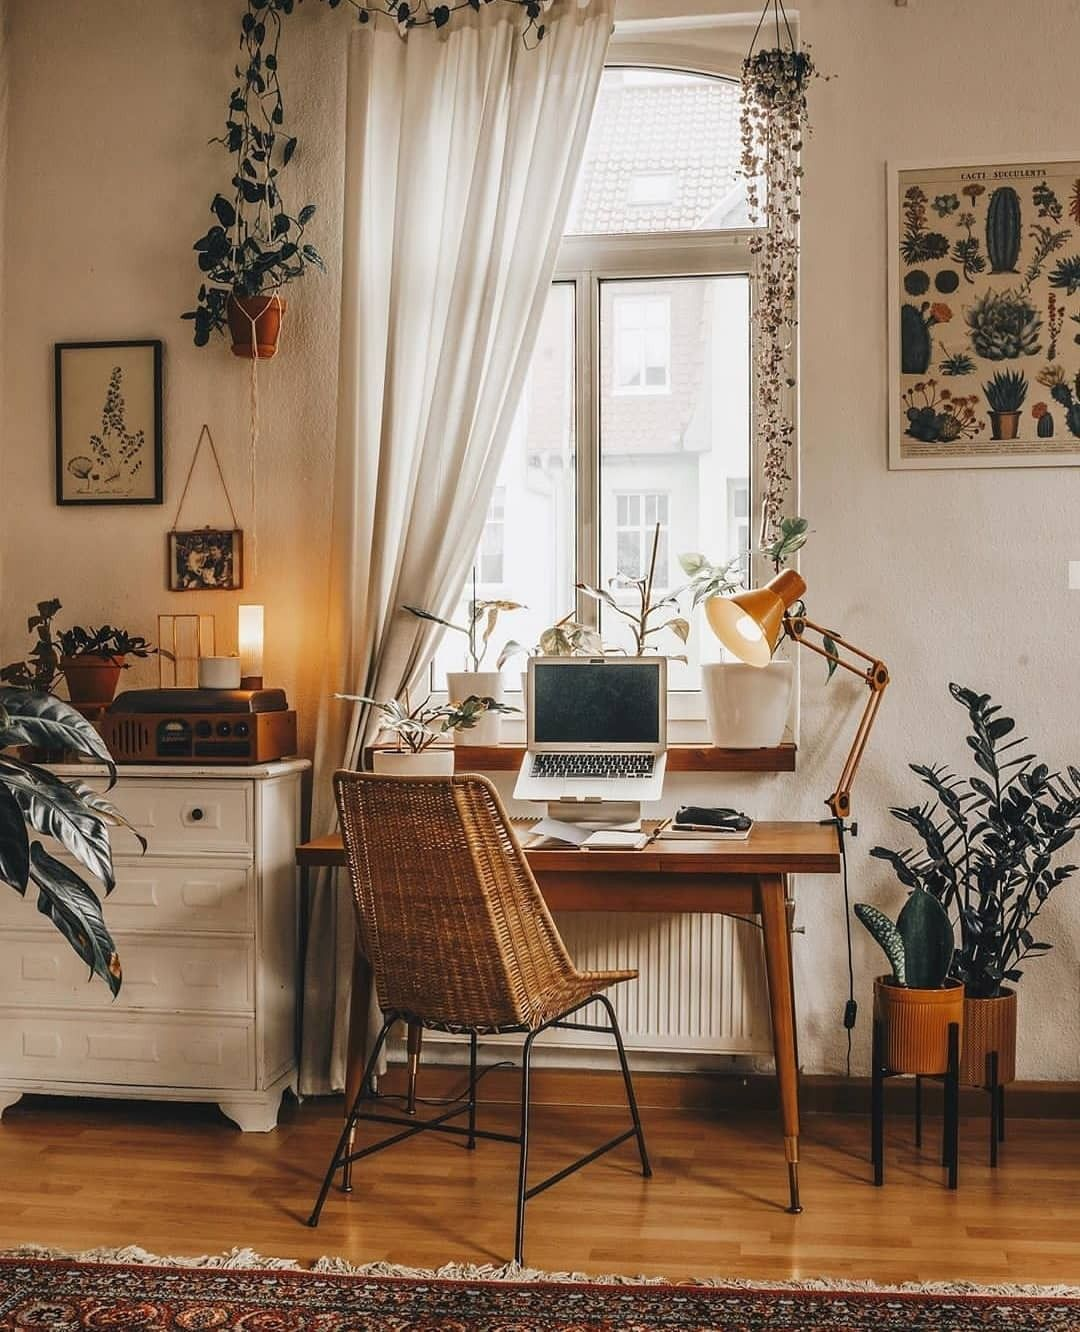 Photo of Most recent Totally Free Bohemian Latest And Stylish Home decor Design And Life …